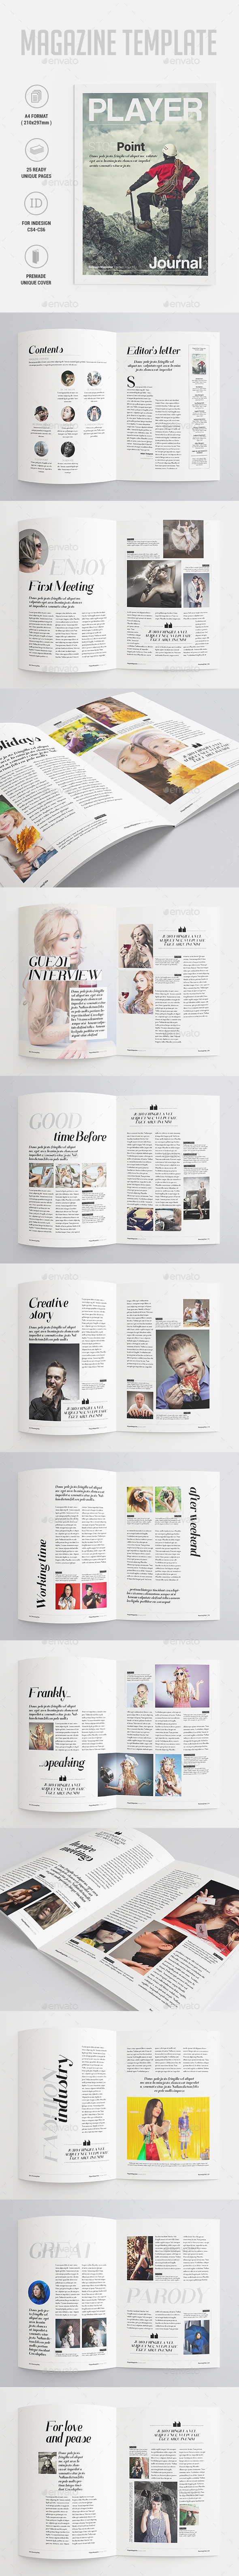 GraphicRiver Magazine Template 9966826